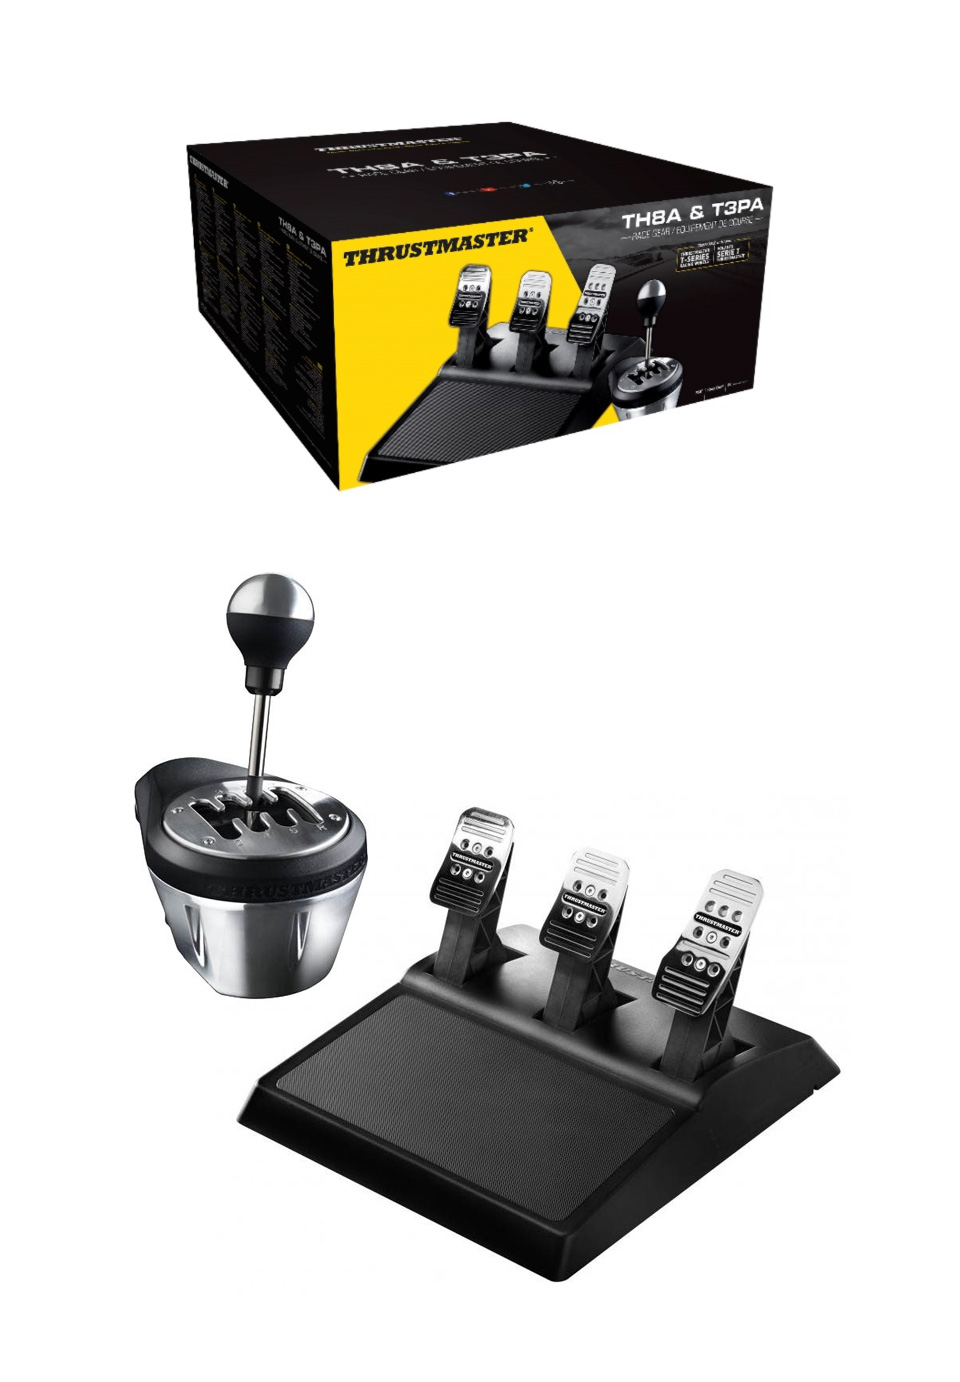 Thrustmaster TH8A /T3PA Race Gear product